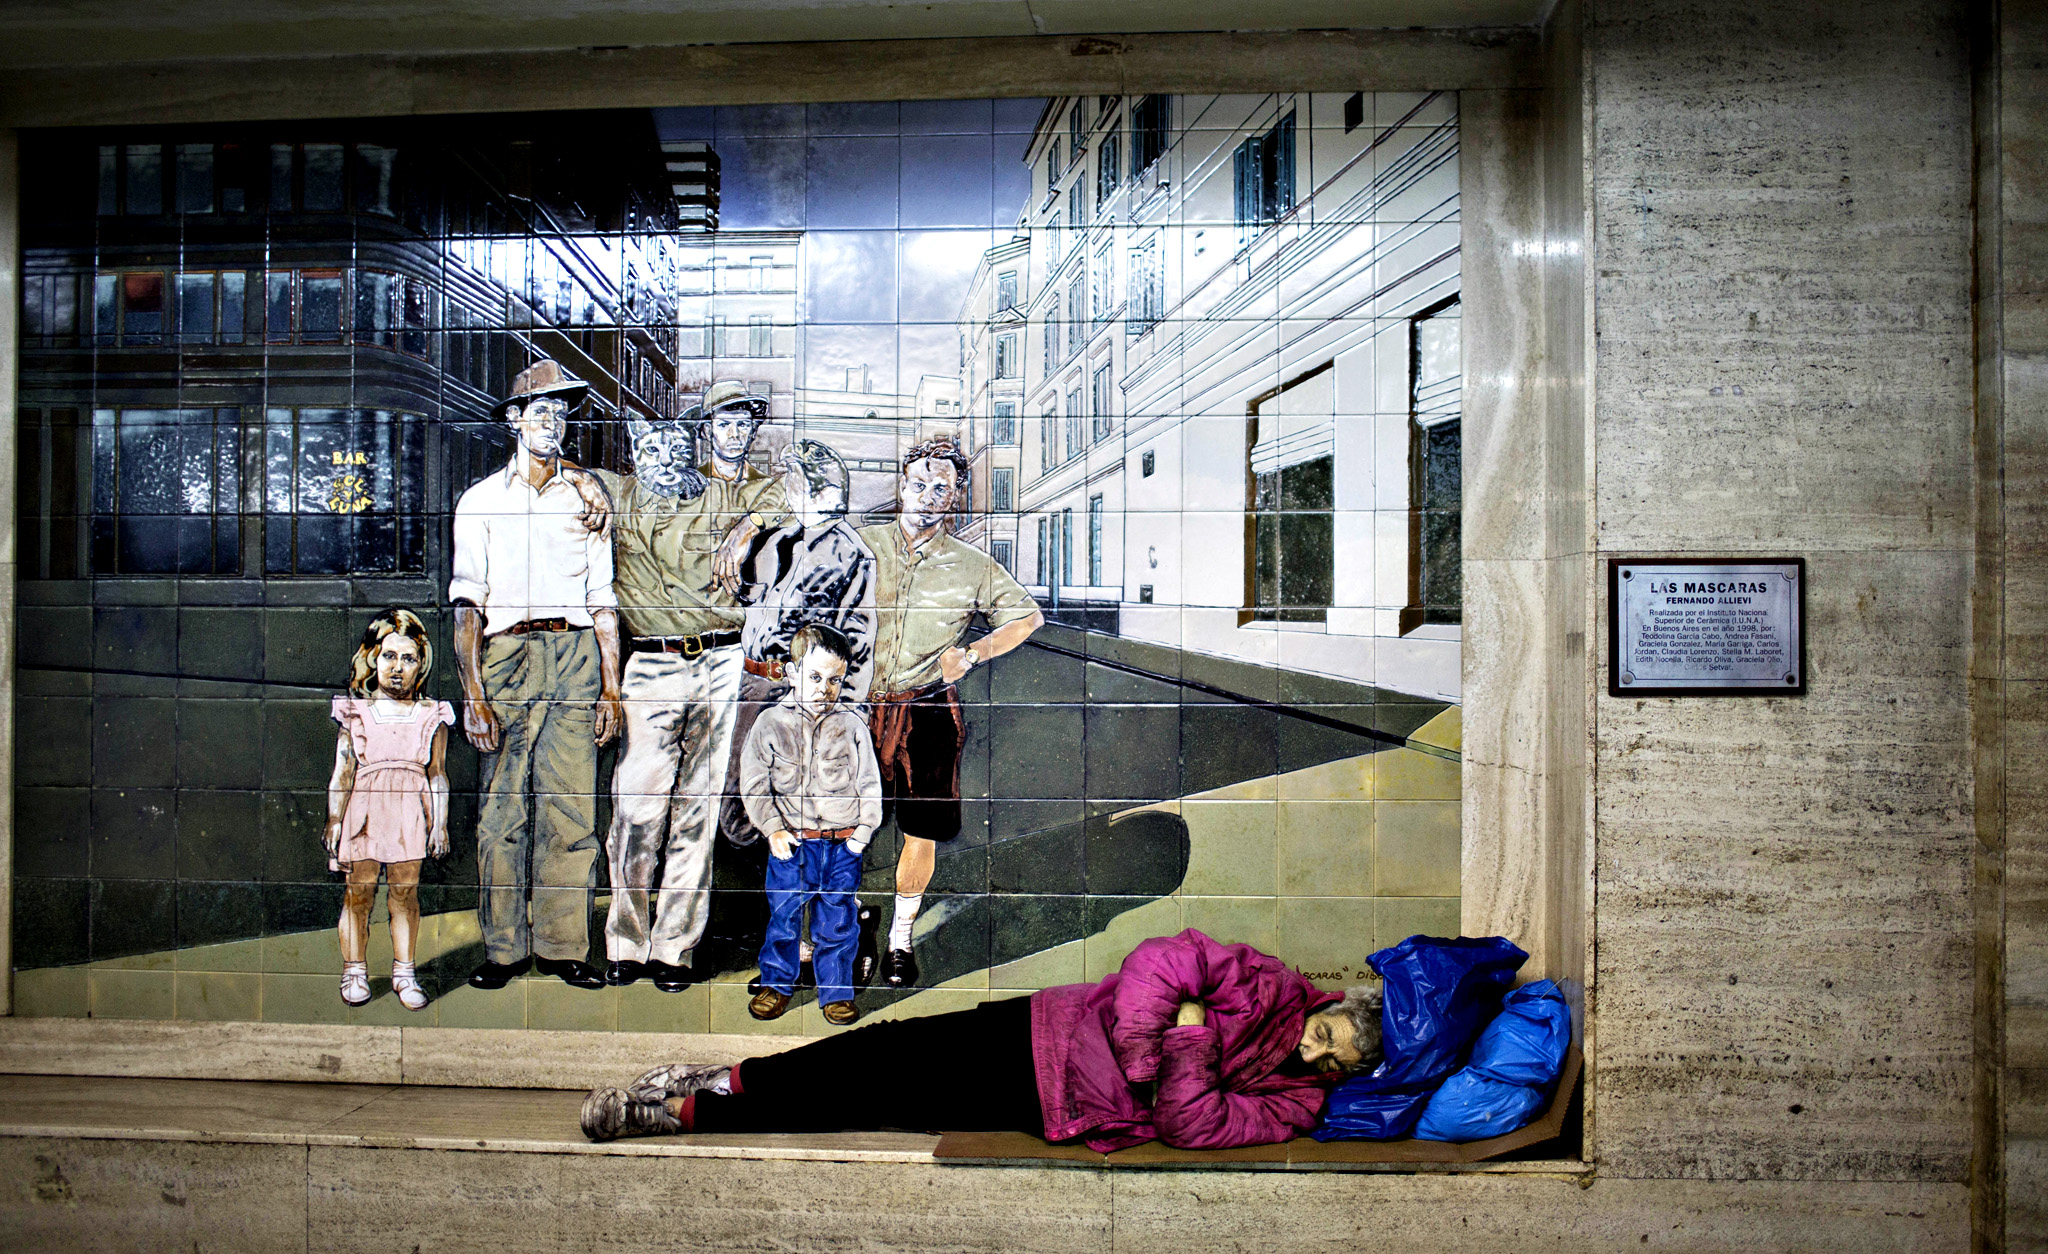 A woman sleeps in front of a painting decorating a subway station in Buenos Aires, Argentina, Wednesday, Sept. 17, 2014.